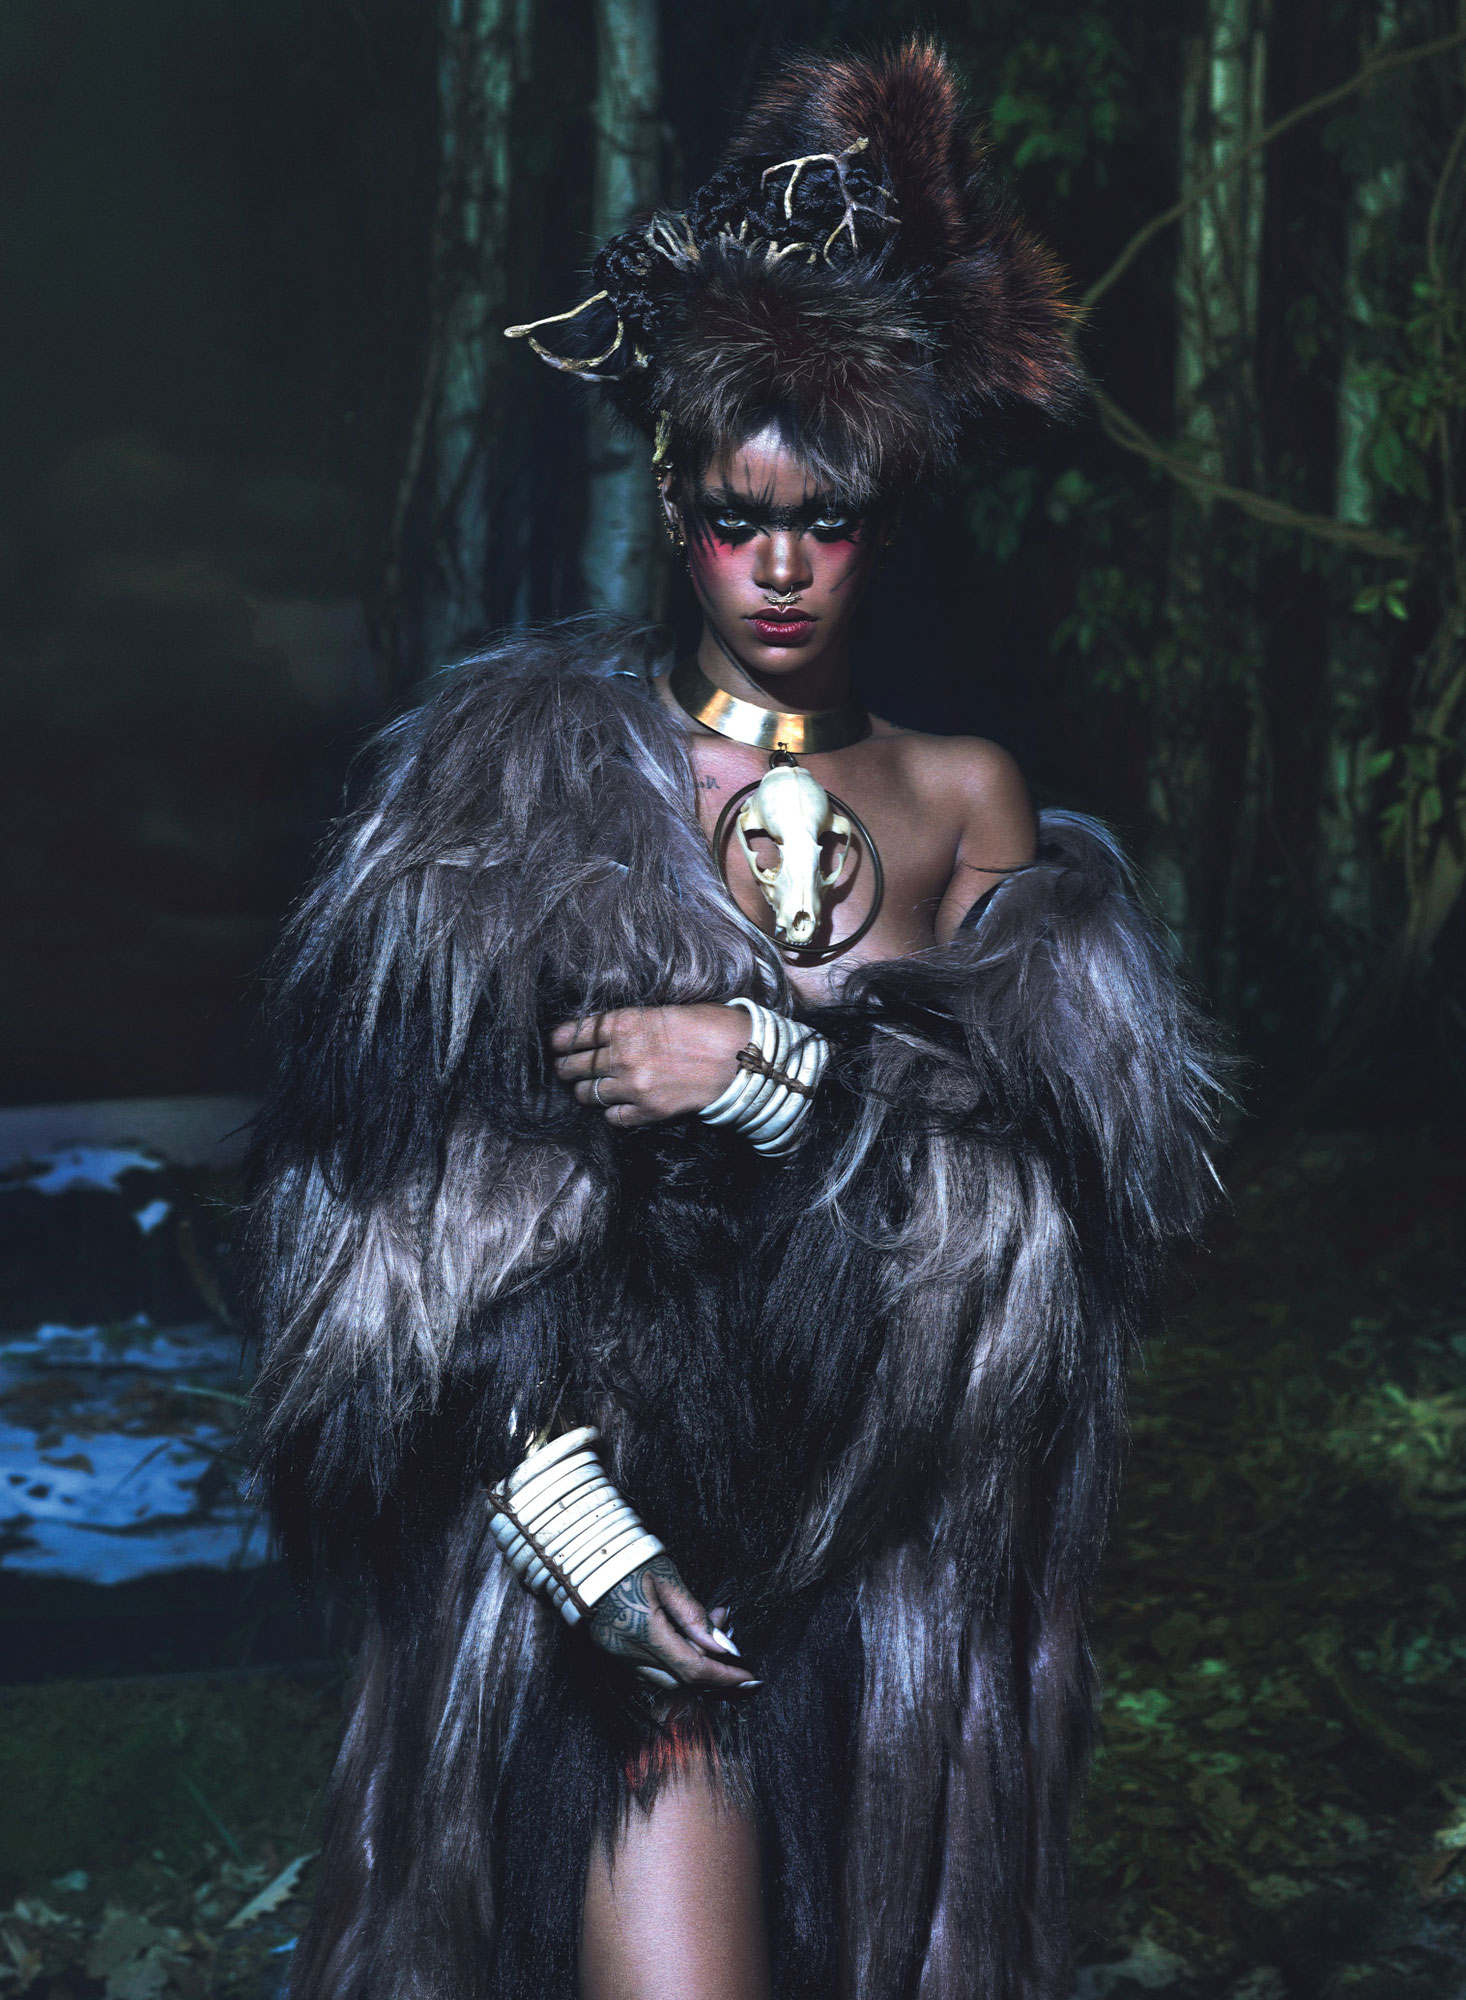 rihanna-by-mert-alas-marcus-piggott-for-w-magazine-september-2014-2.jpg